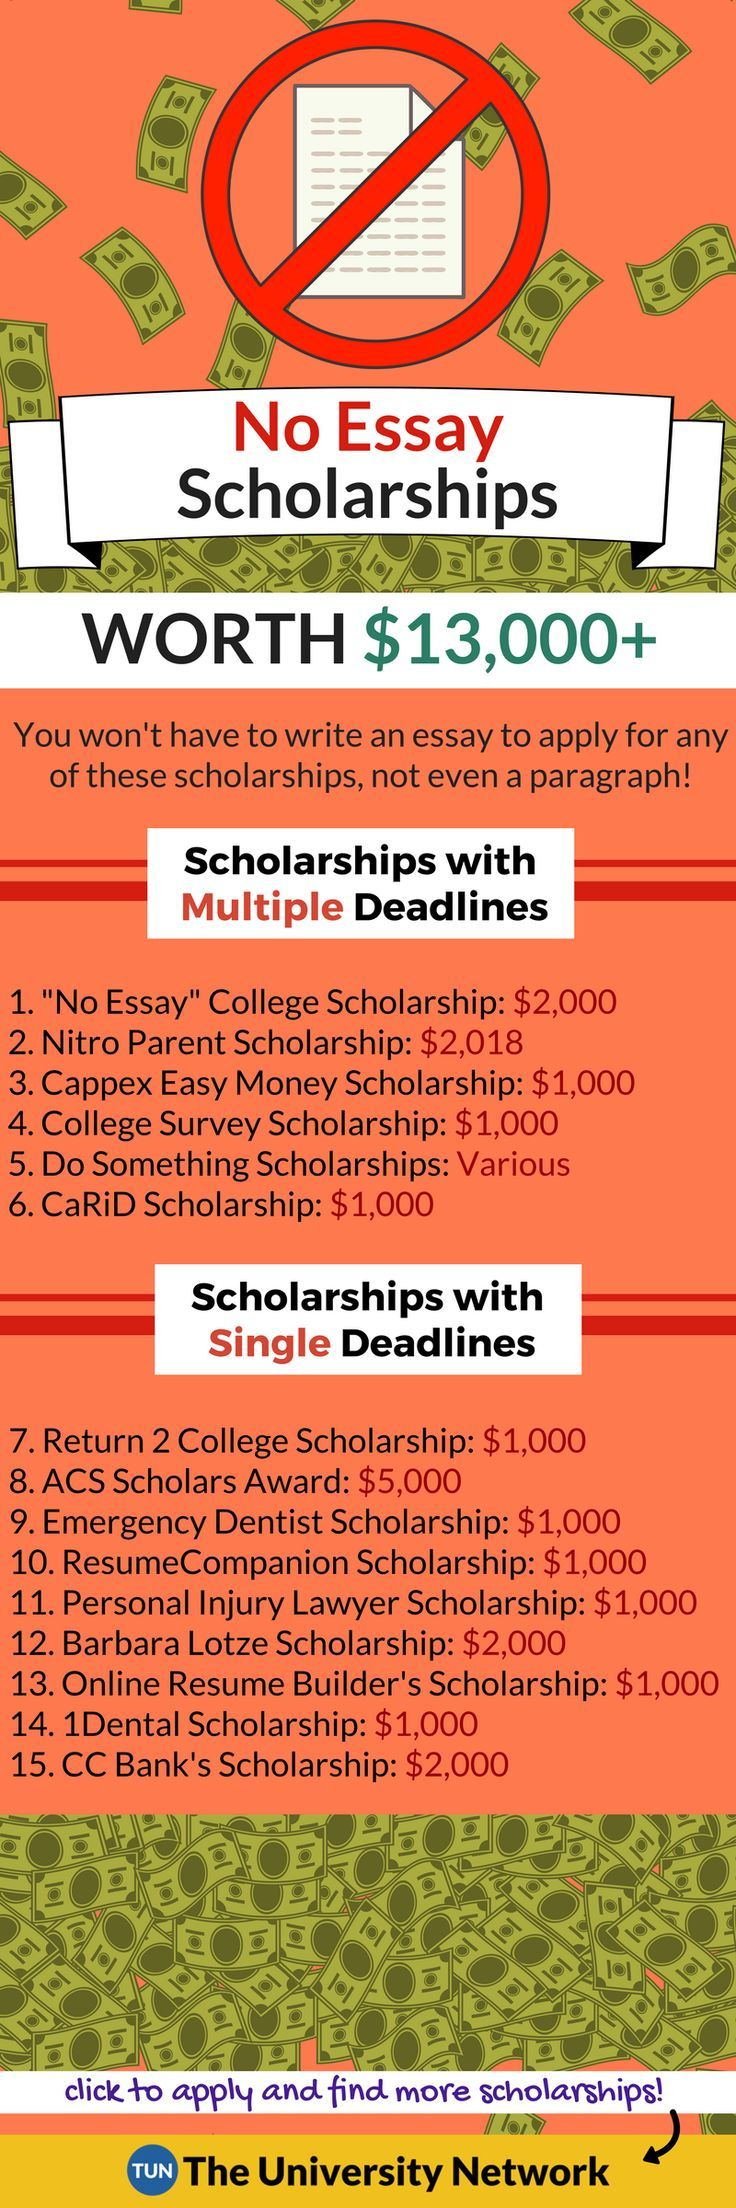 No Essay Scholarships Worth   Scholarships For College  You Won T Have To Write An Essay To Apply For Any Of These Scholarships  Not Even A Paragraph Essay In English Language also Apa Style Essay Paper  Essay Samples For High School